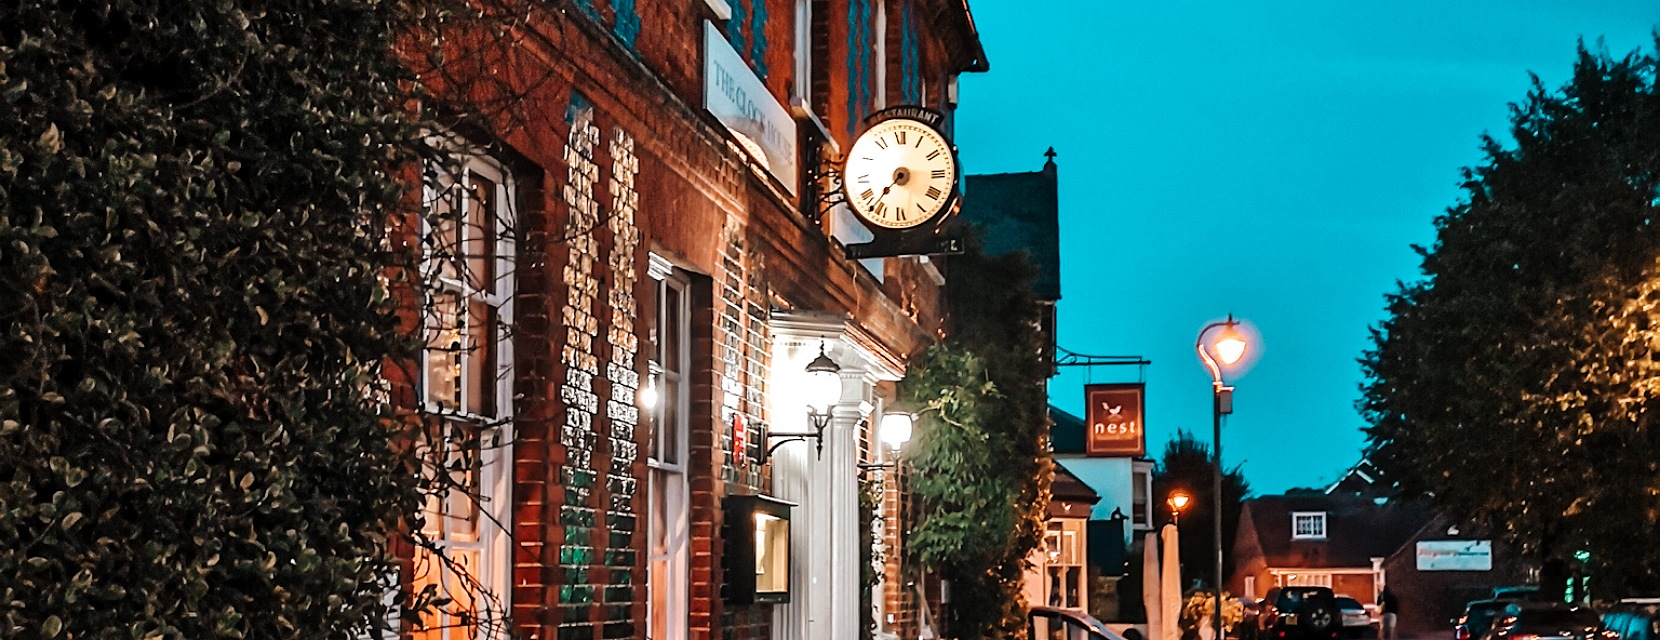 Restaurant recommendation: The Clock House, romantic fine dining in Surrey 50